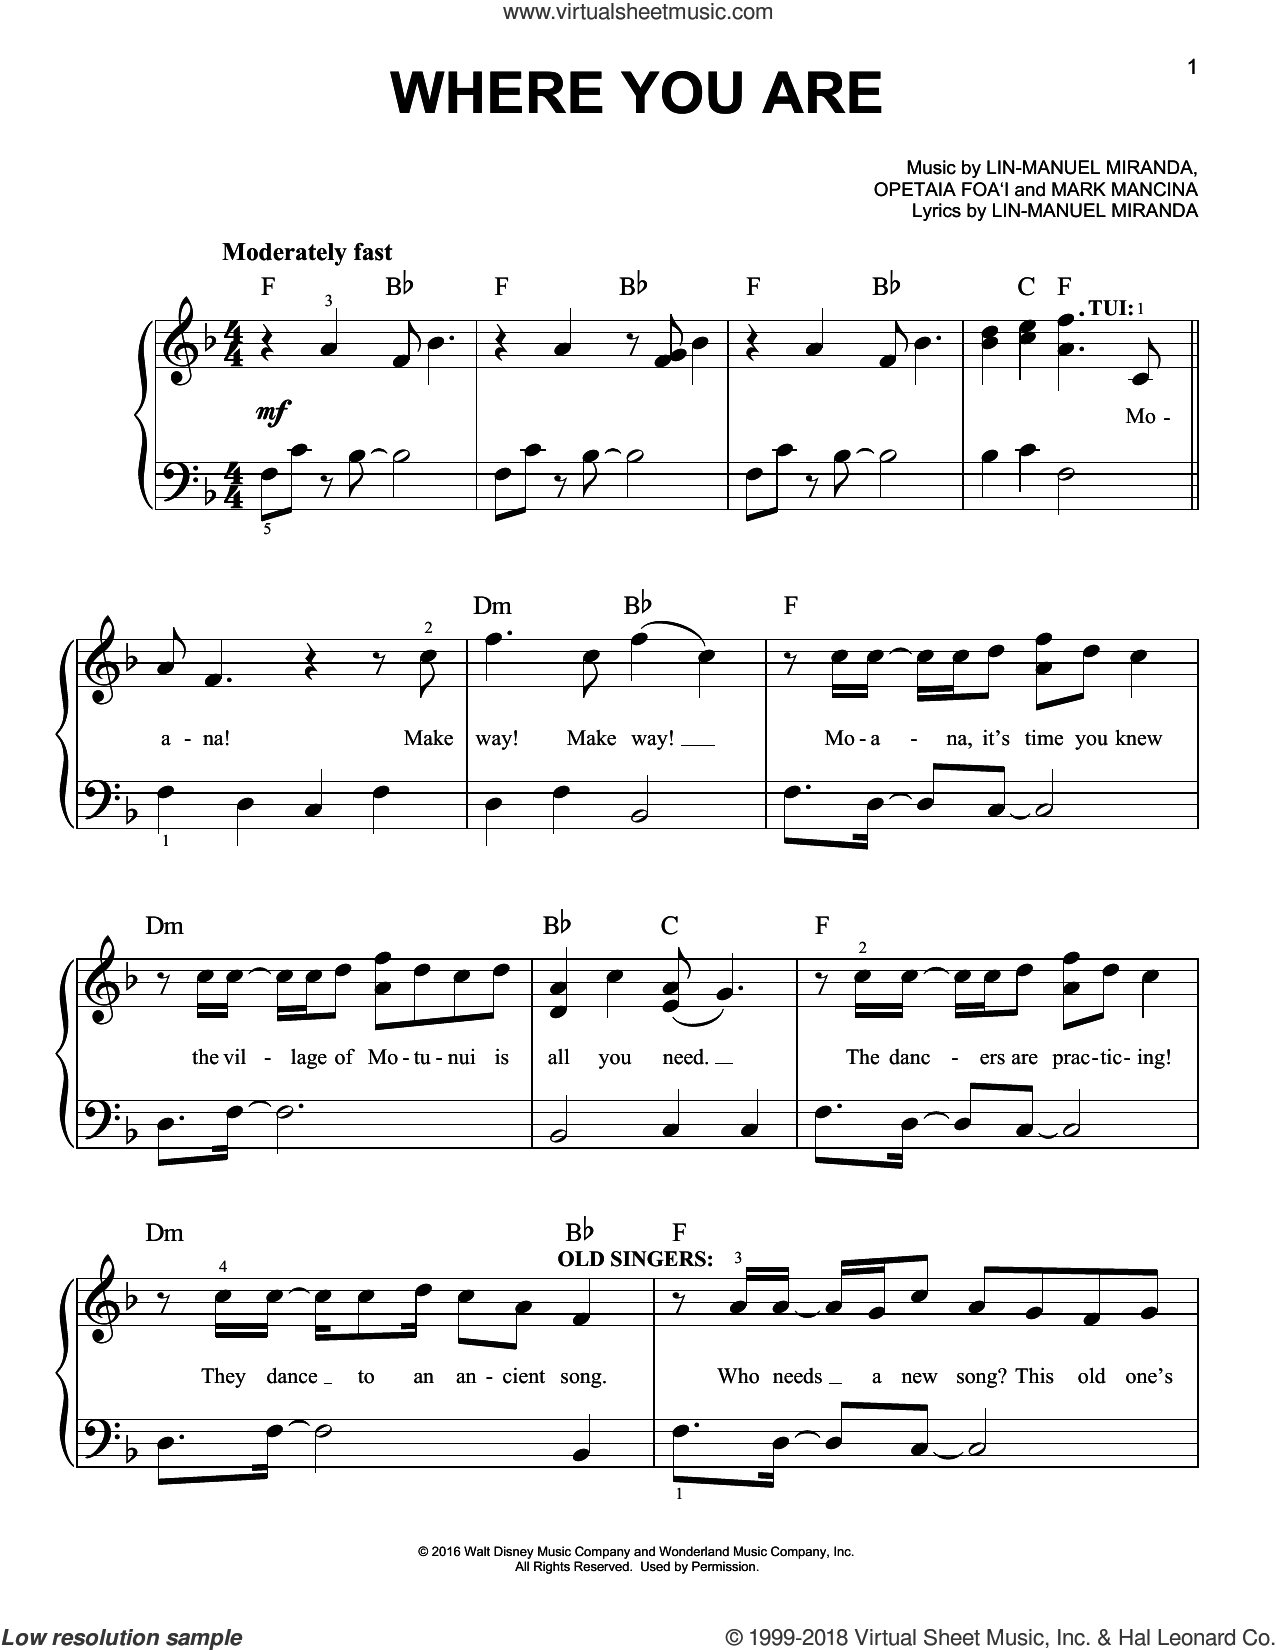 Where You Are (from Moana) sheet music for piano solo by Lin-Manuel Miranda and Mark Mancina, easy skill level